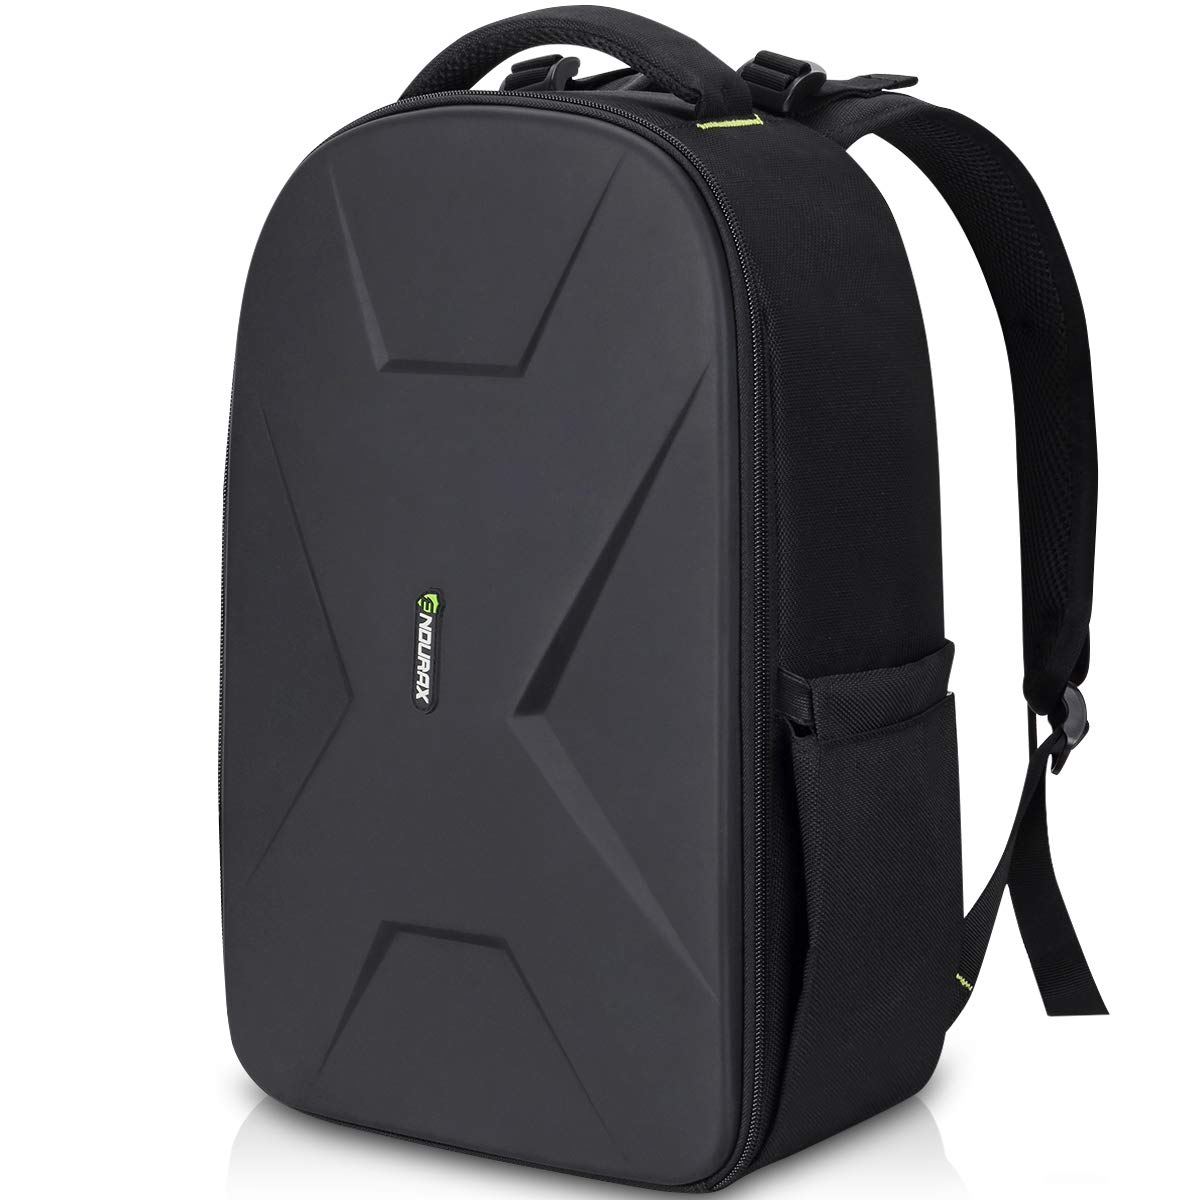 Endurax Camera Backpack Waterproof for DSLR SLR Photographer Camera Bag for Mirrorless Camera with Hardshell Protection by Endurax